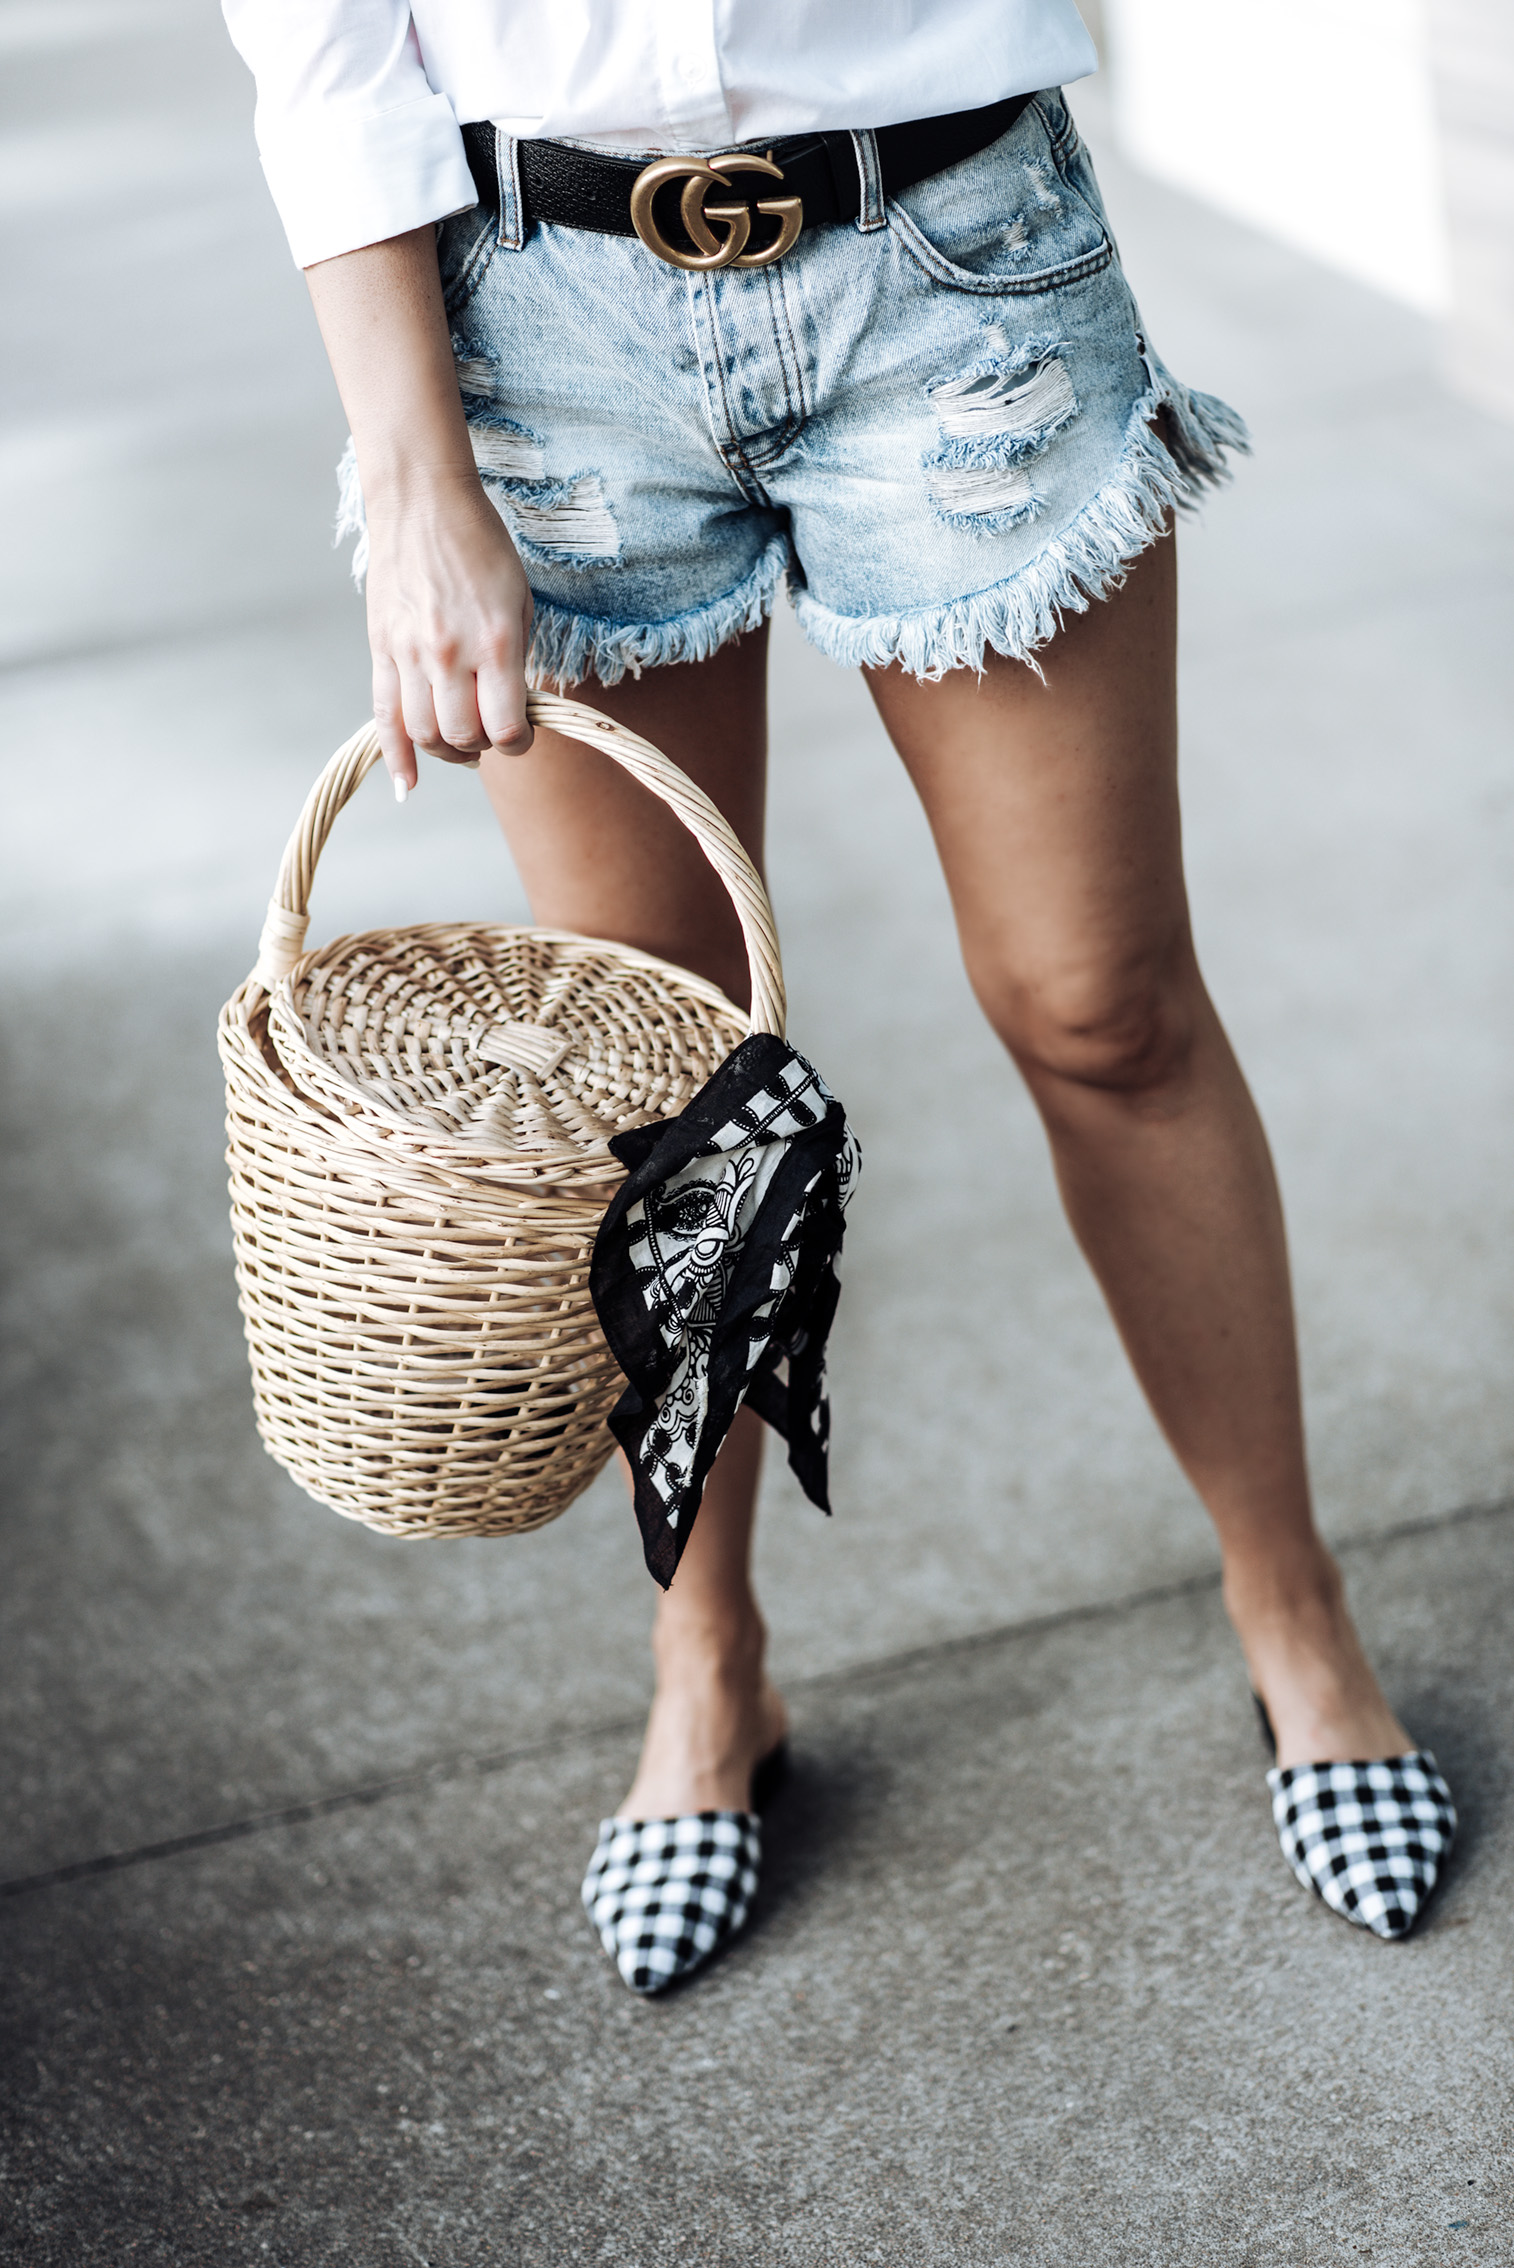 Tiffany Jais Houston fashion blogger | Gucci double g belt | White button down top  | One Teaspoon shorts | Straw basket handbag | Streetstyle outfit ideas 2017 Gingham flats